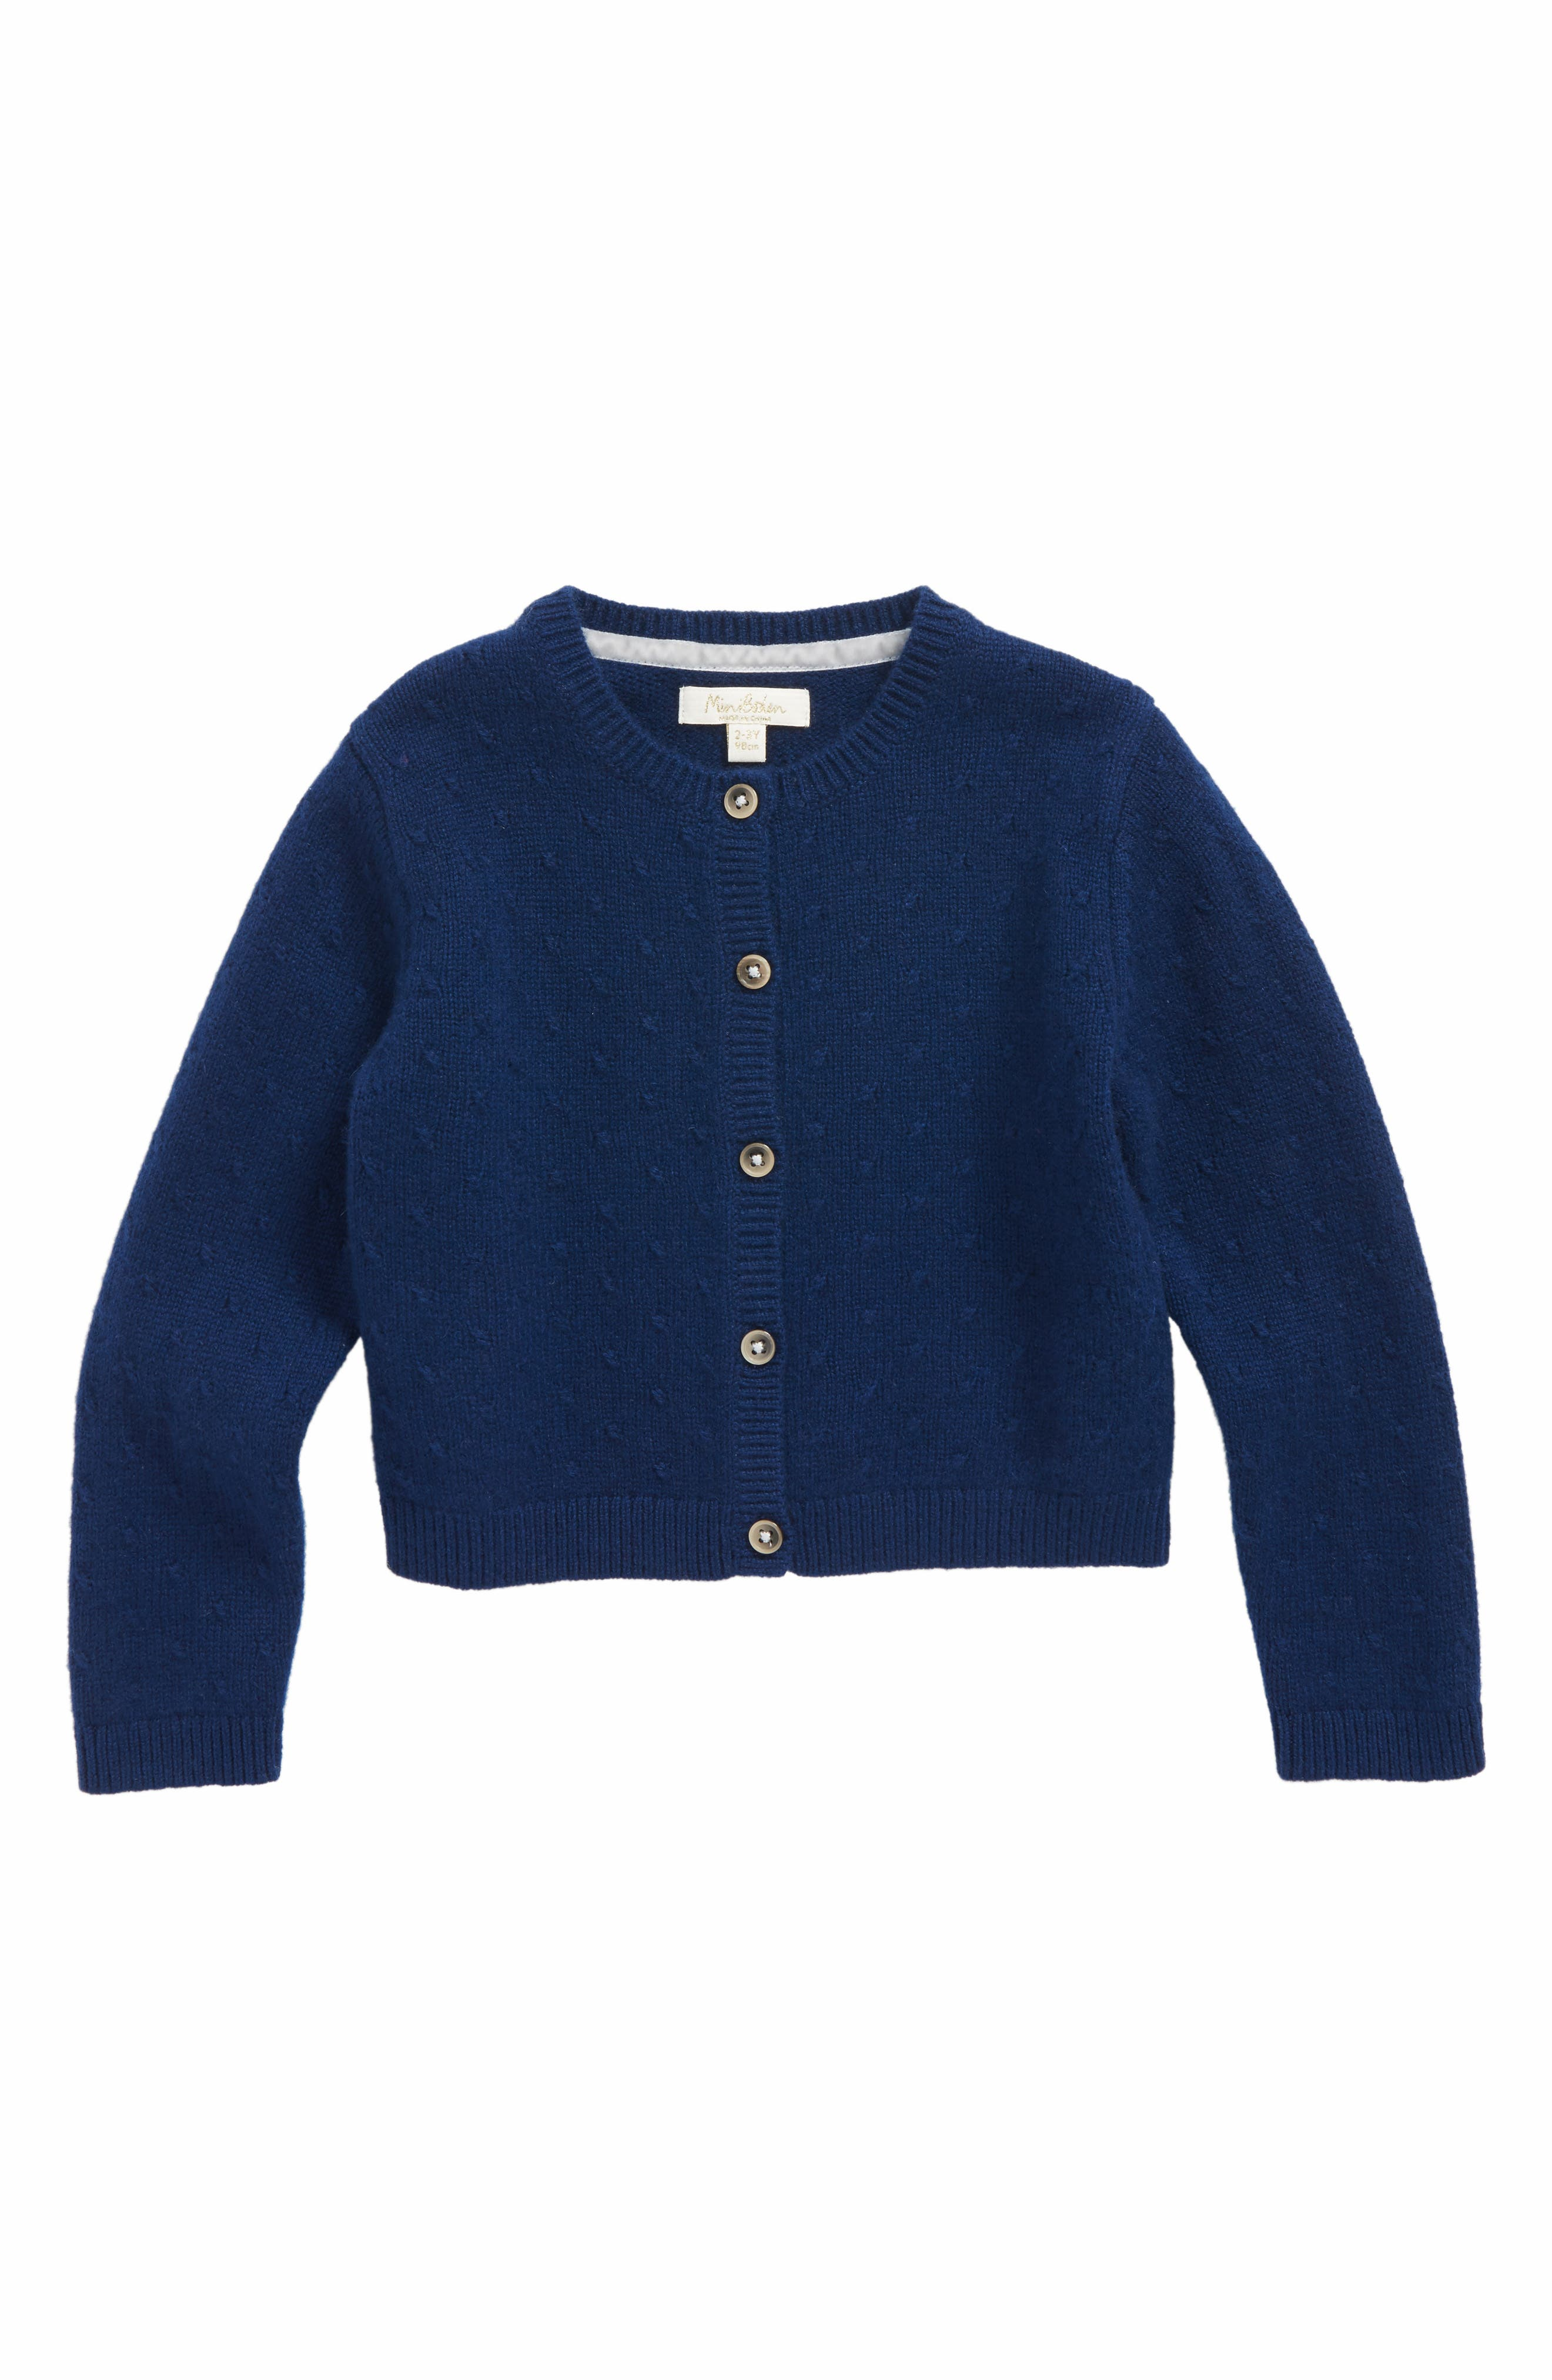 Cashmere Cardigan,                             Main thumbnail 1, color,                             Navy